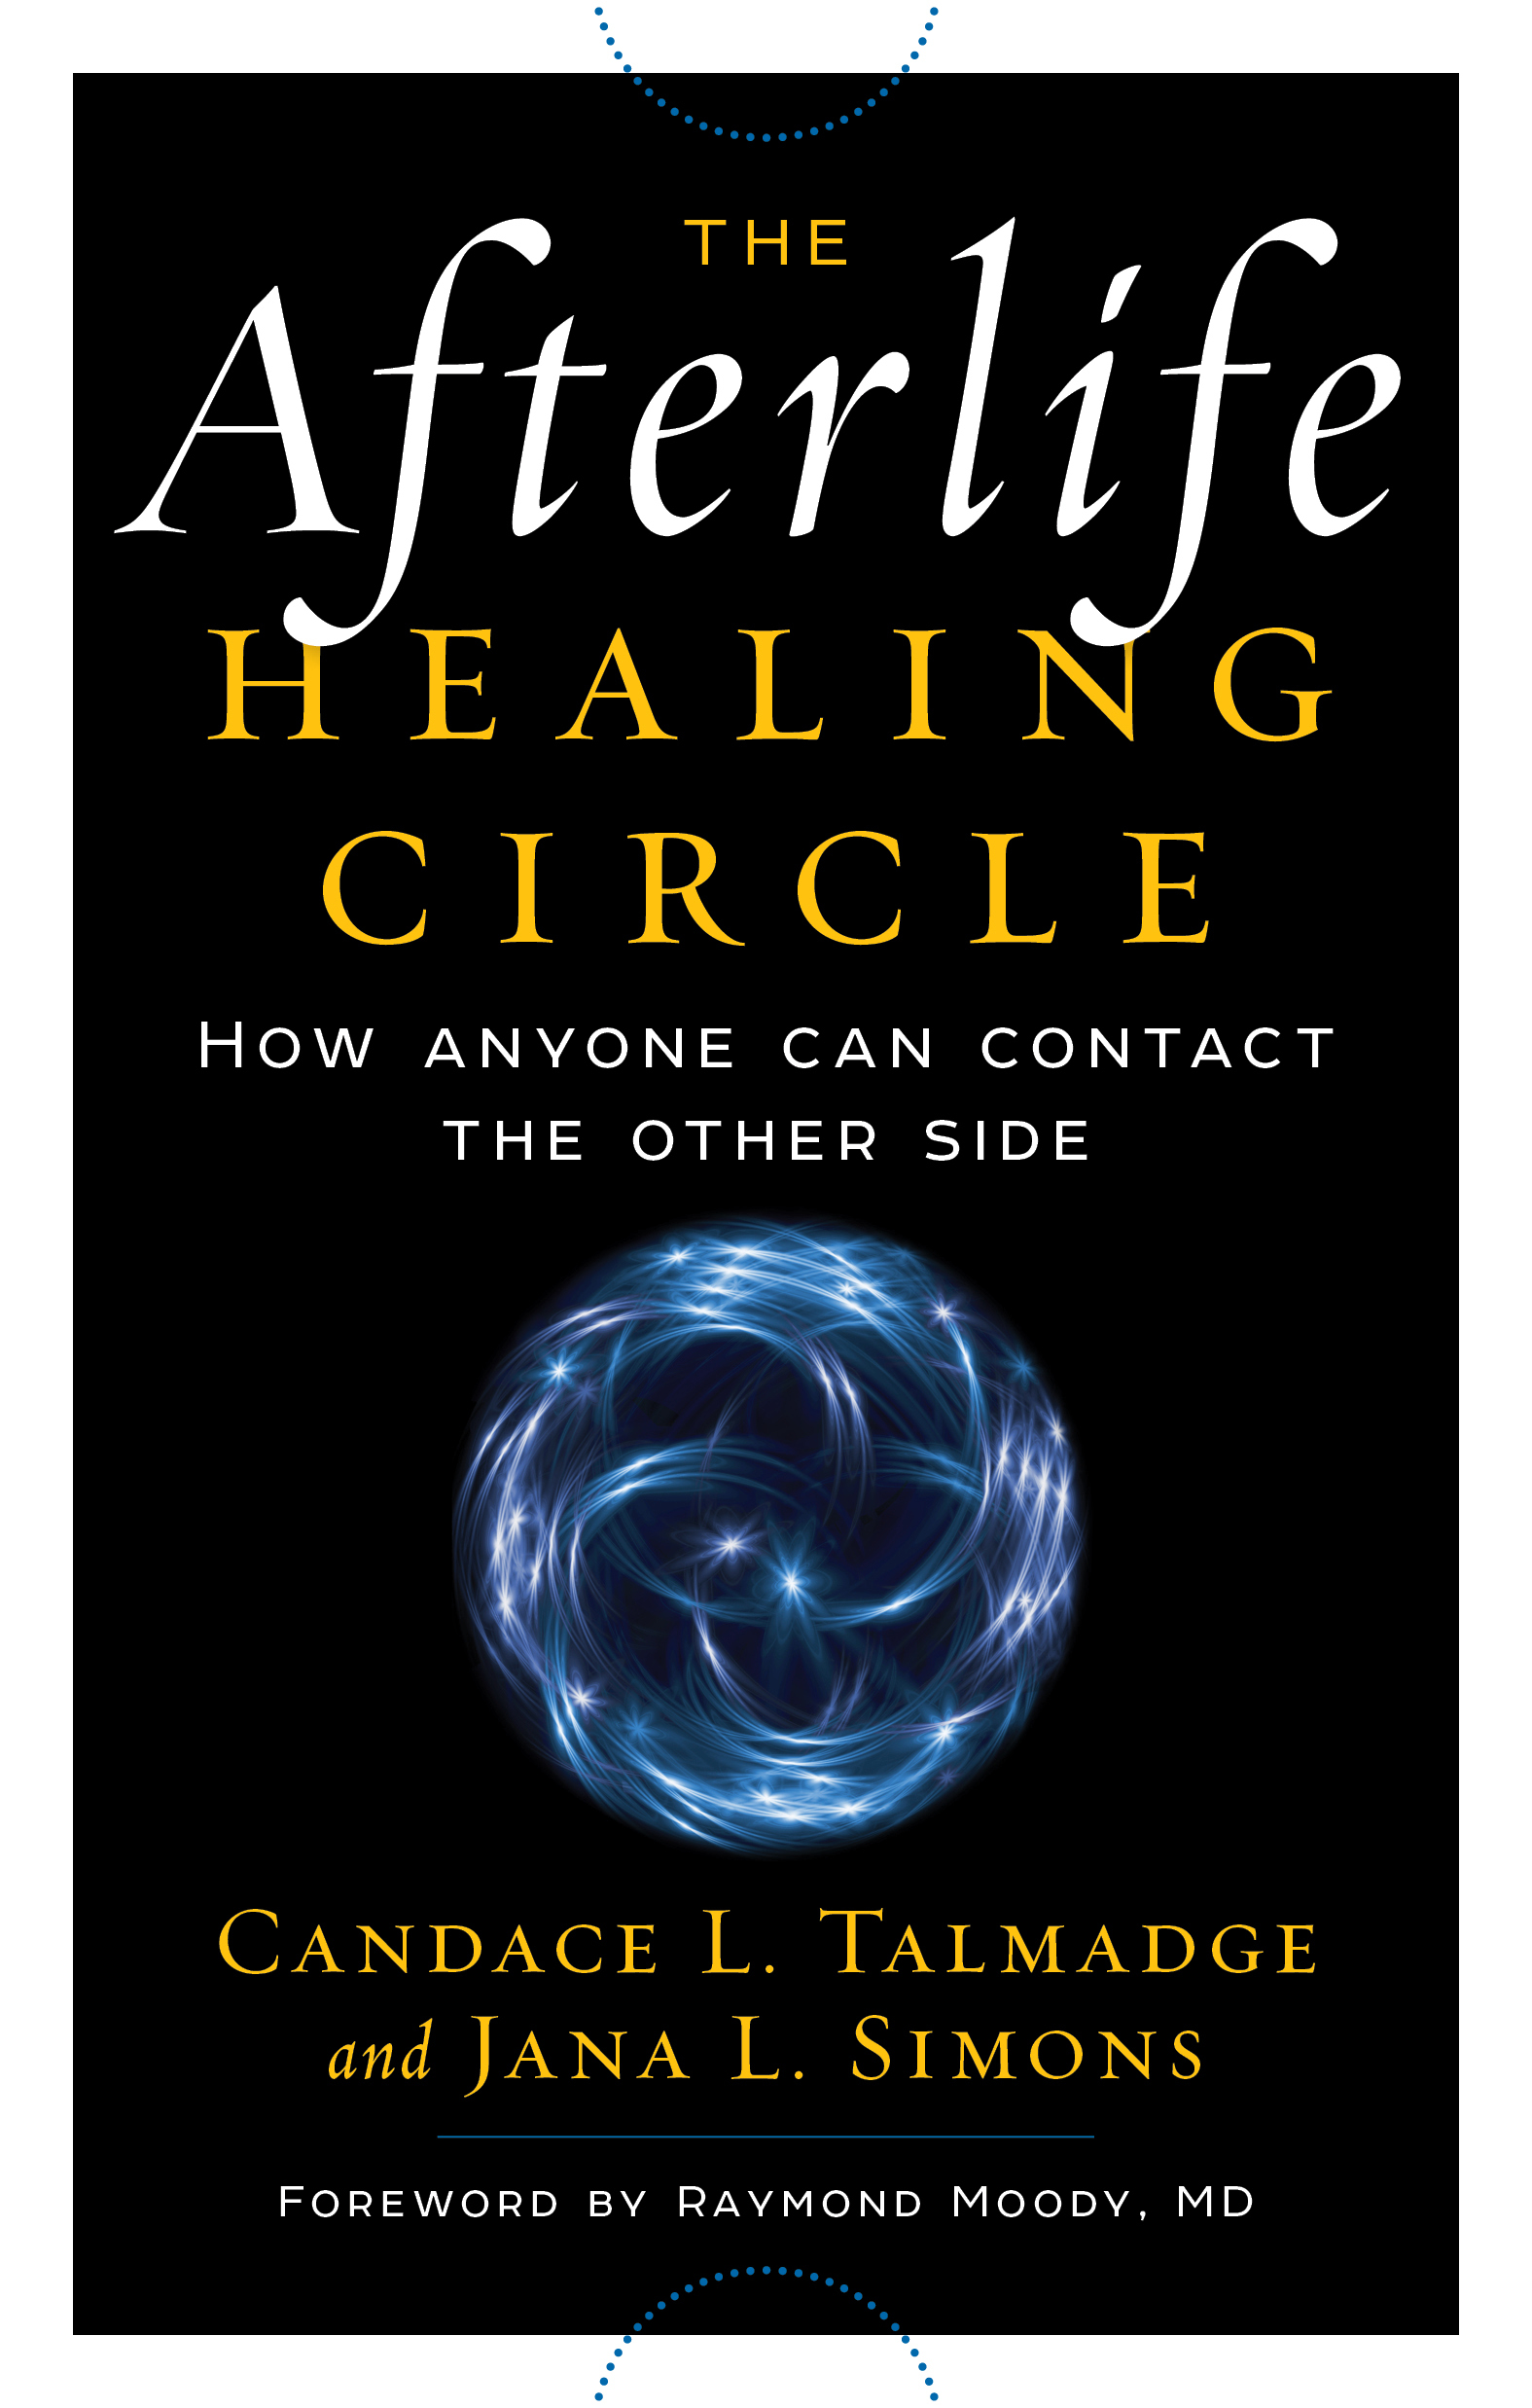 The-afterlife-healing-circle-how-anyone-can-contact-the-other-side